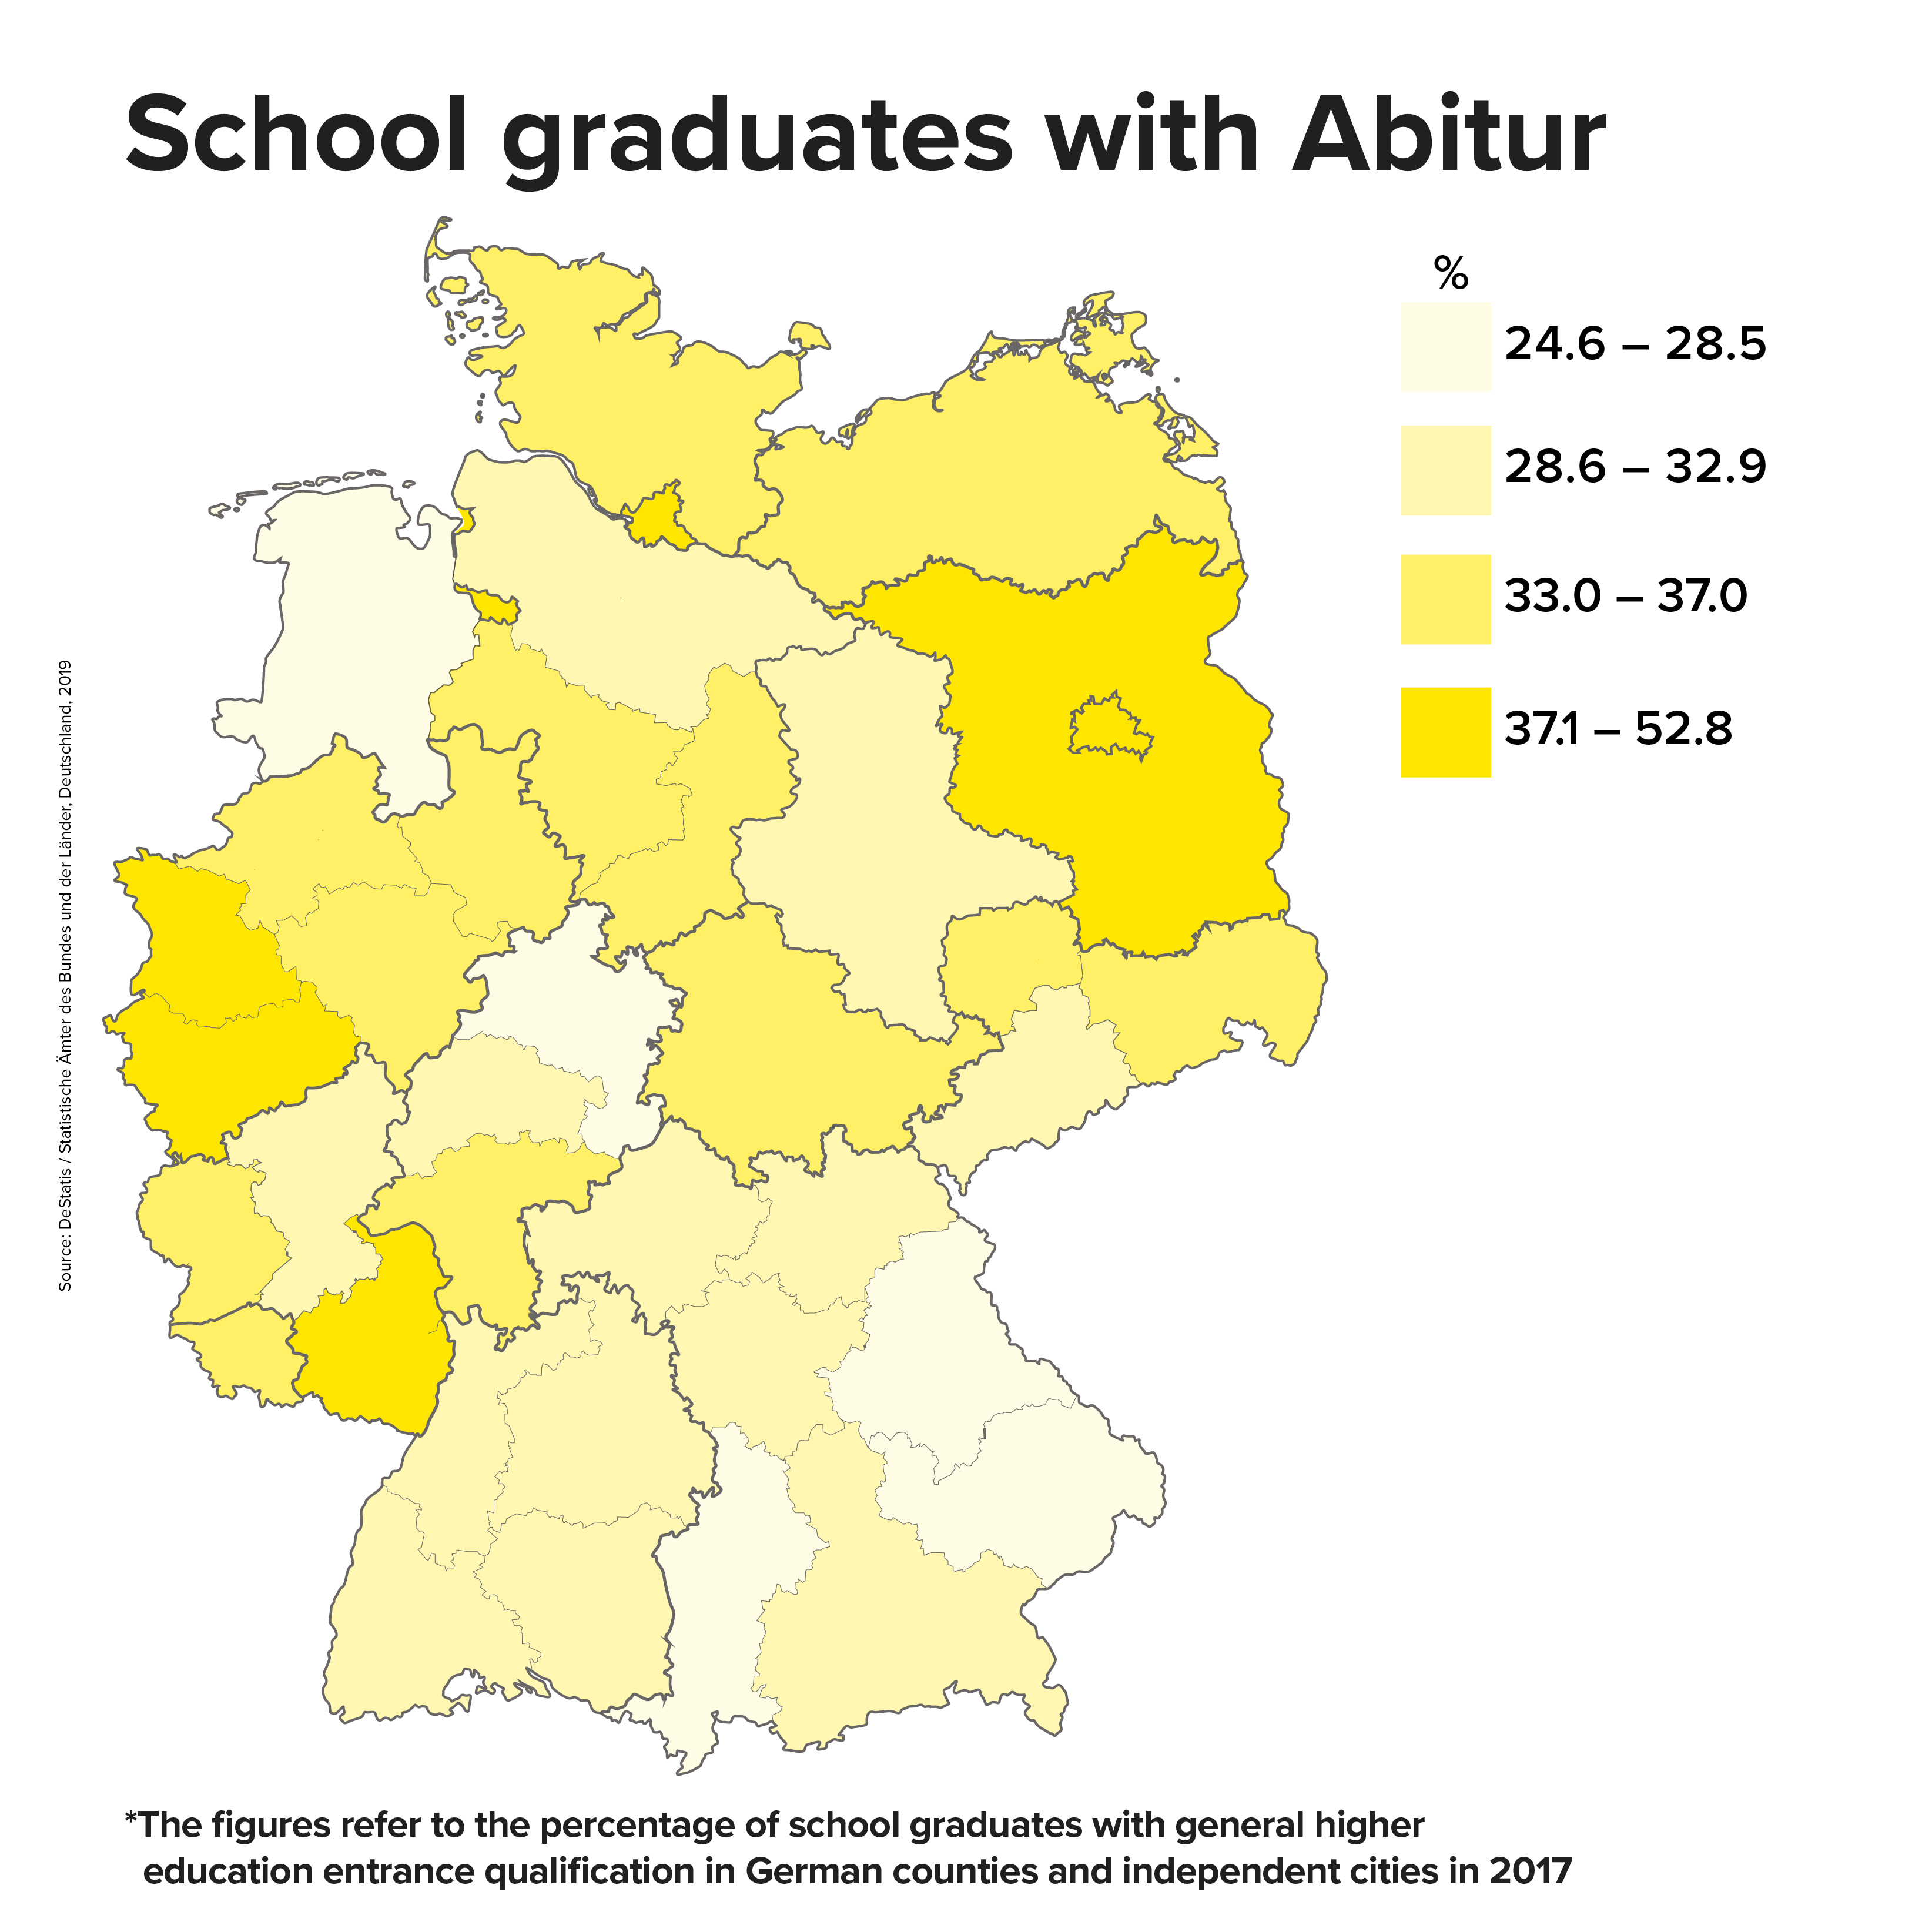 Germany: school graduates with Abitur